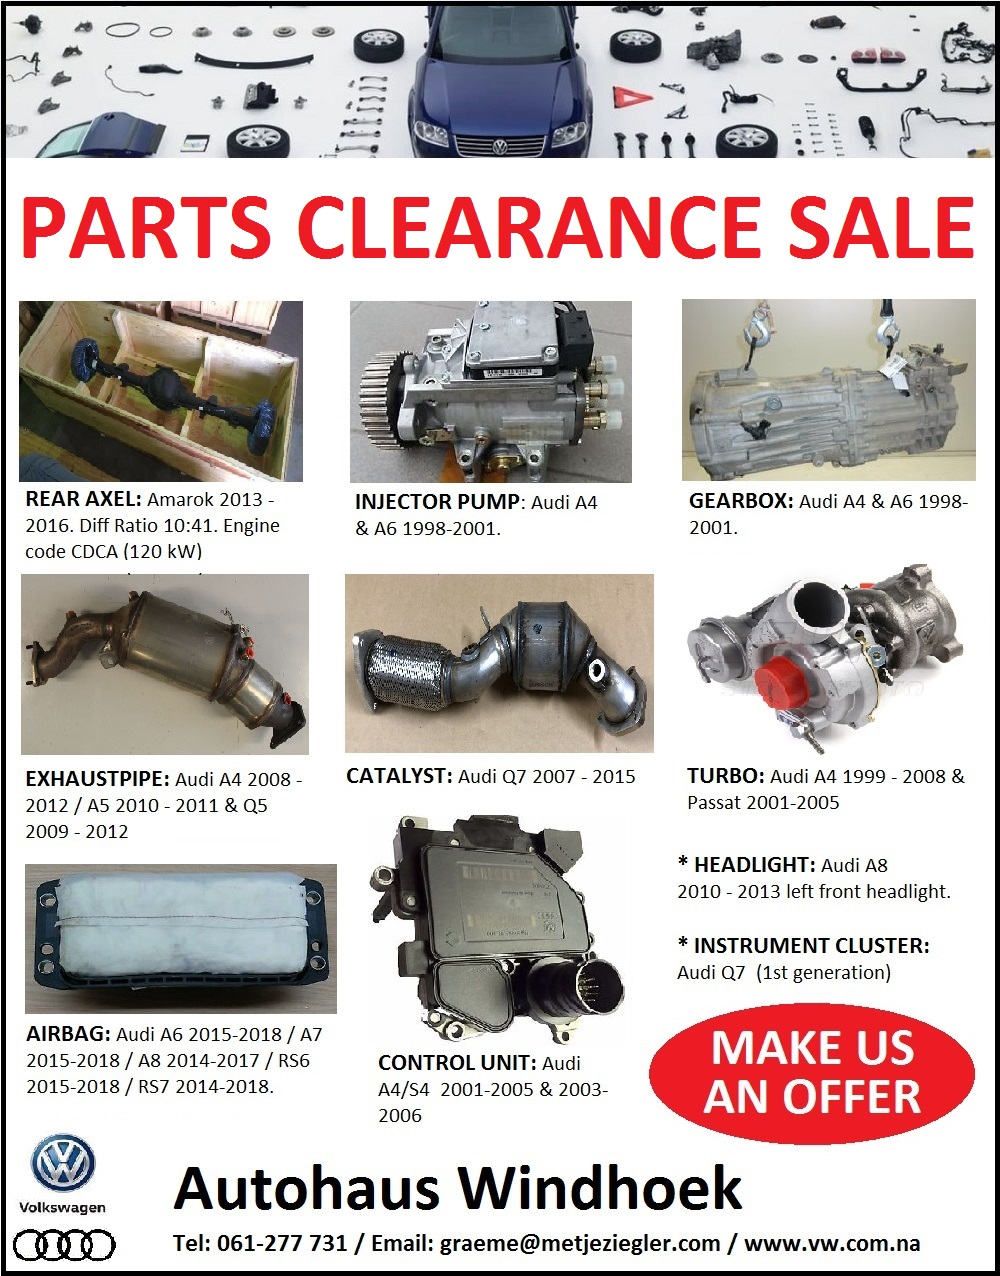 PARTS CLEARANCE SALES